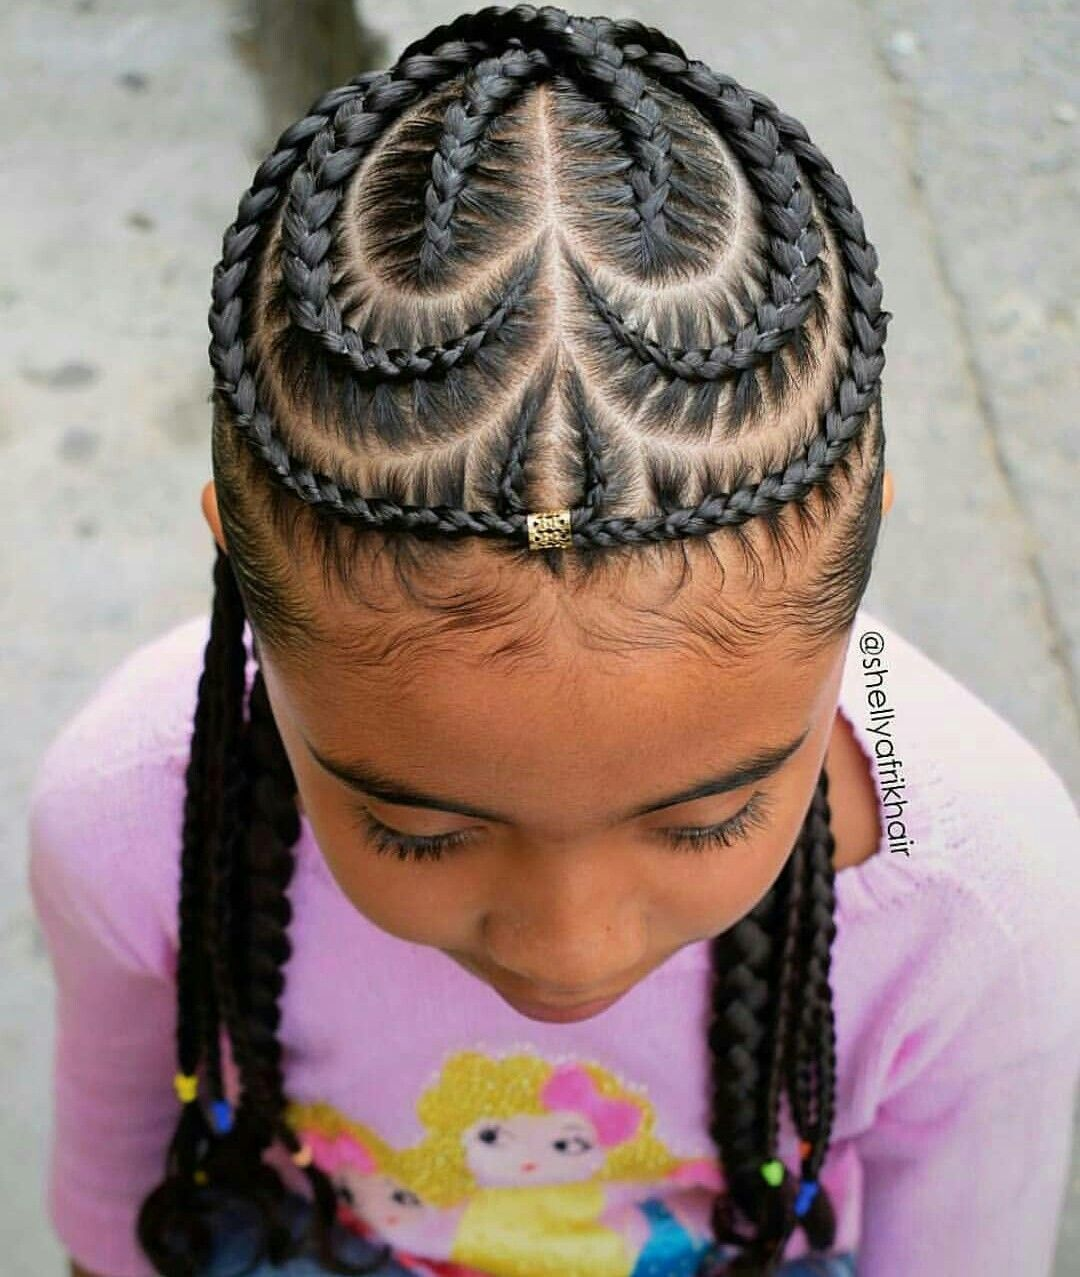 Follow Thelavishbee For More Interesting Pins Lil Girl Hairstyles Kids Hairstyles Braided Hairstyles